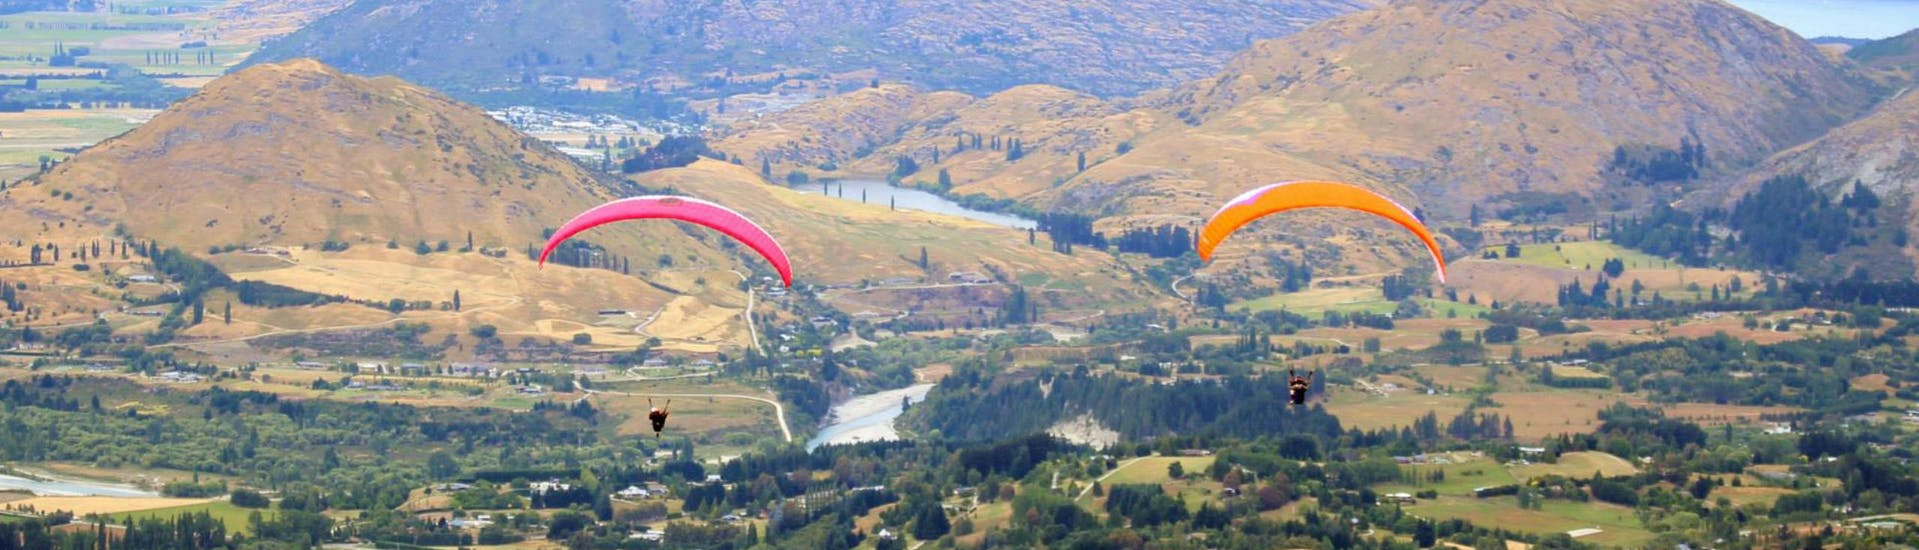 Two paragliders from Skytrek Queenstown are flying next to each other while Paragliding in Queenstown - Summer.